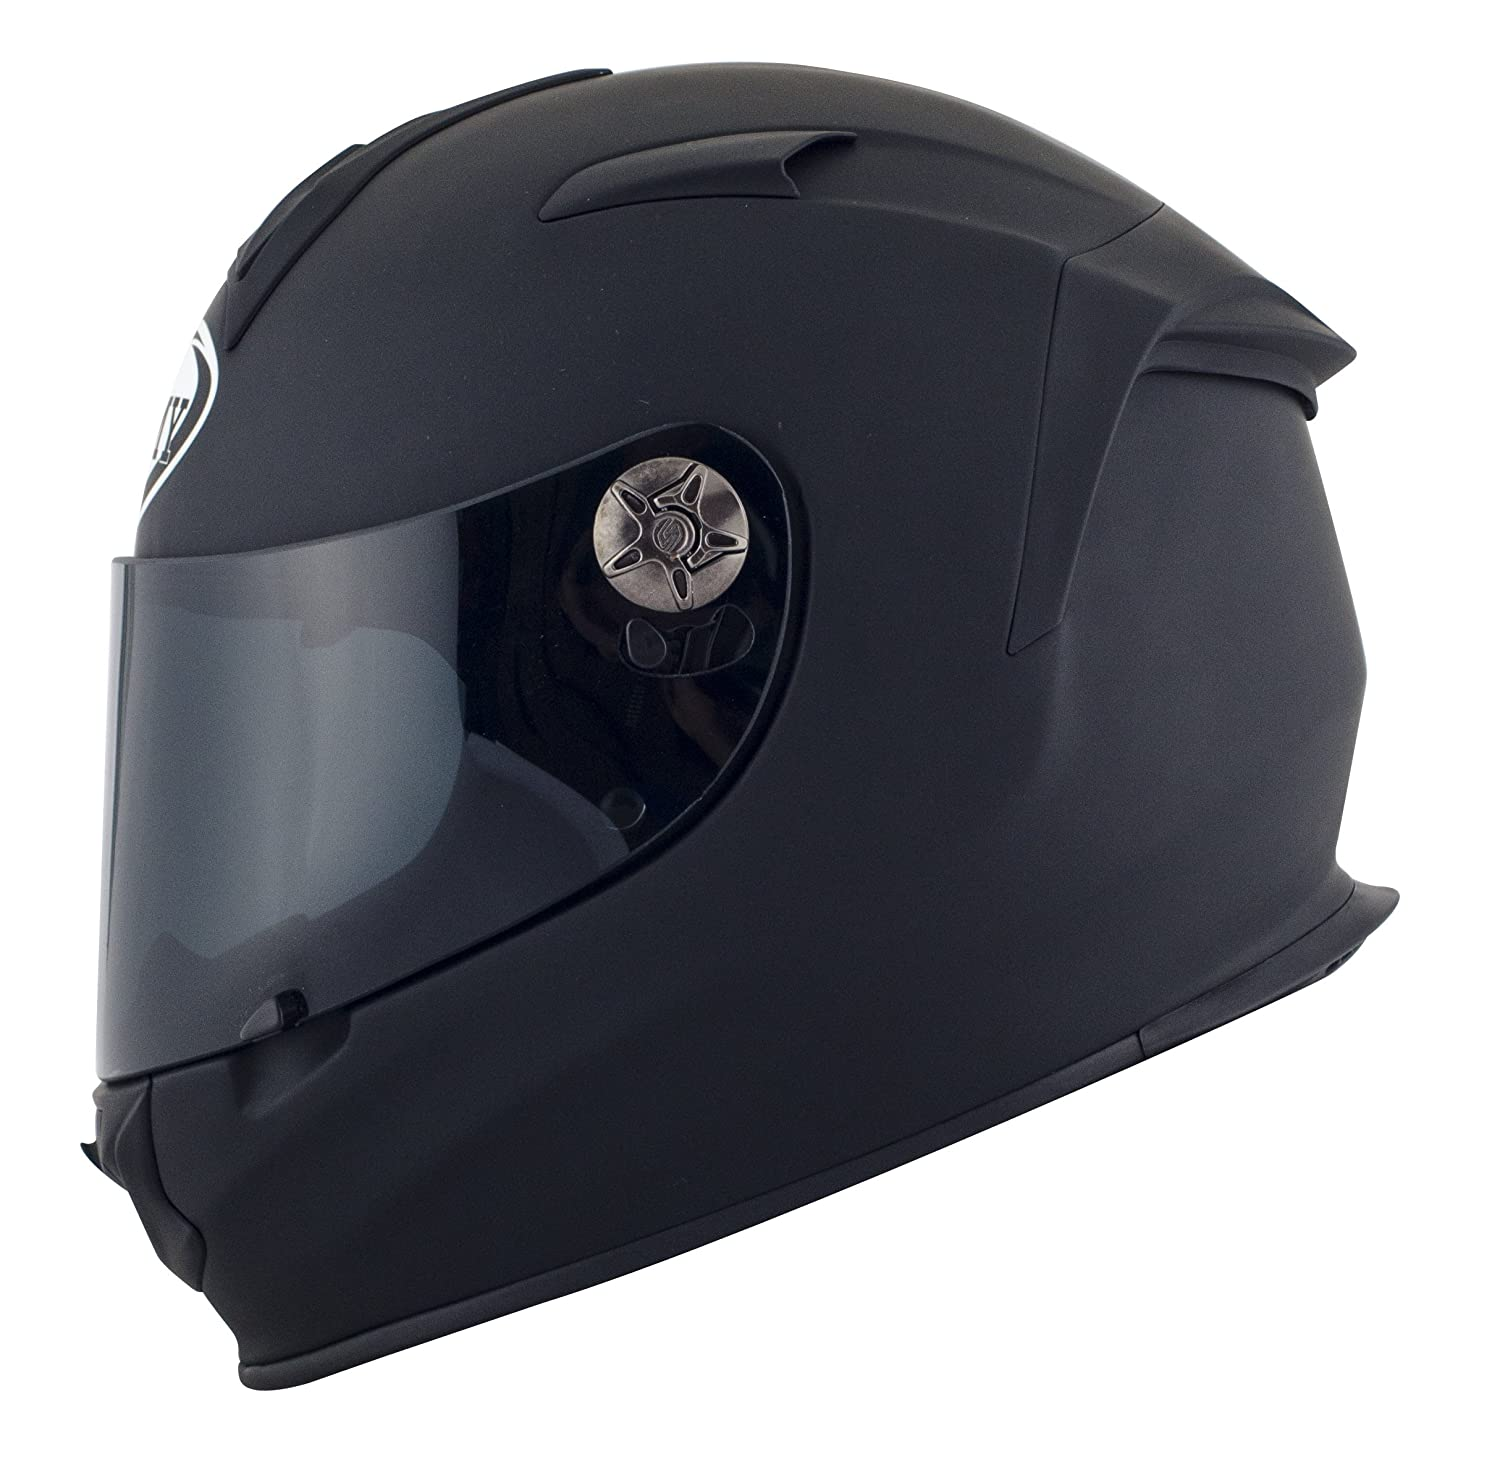 Amazon.es: SUOMY SR Sport - Casco para Moto Integral, Negro Mate (Plain Negro Mate), M